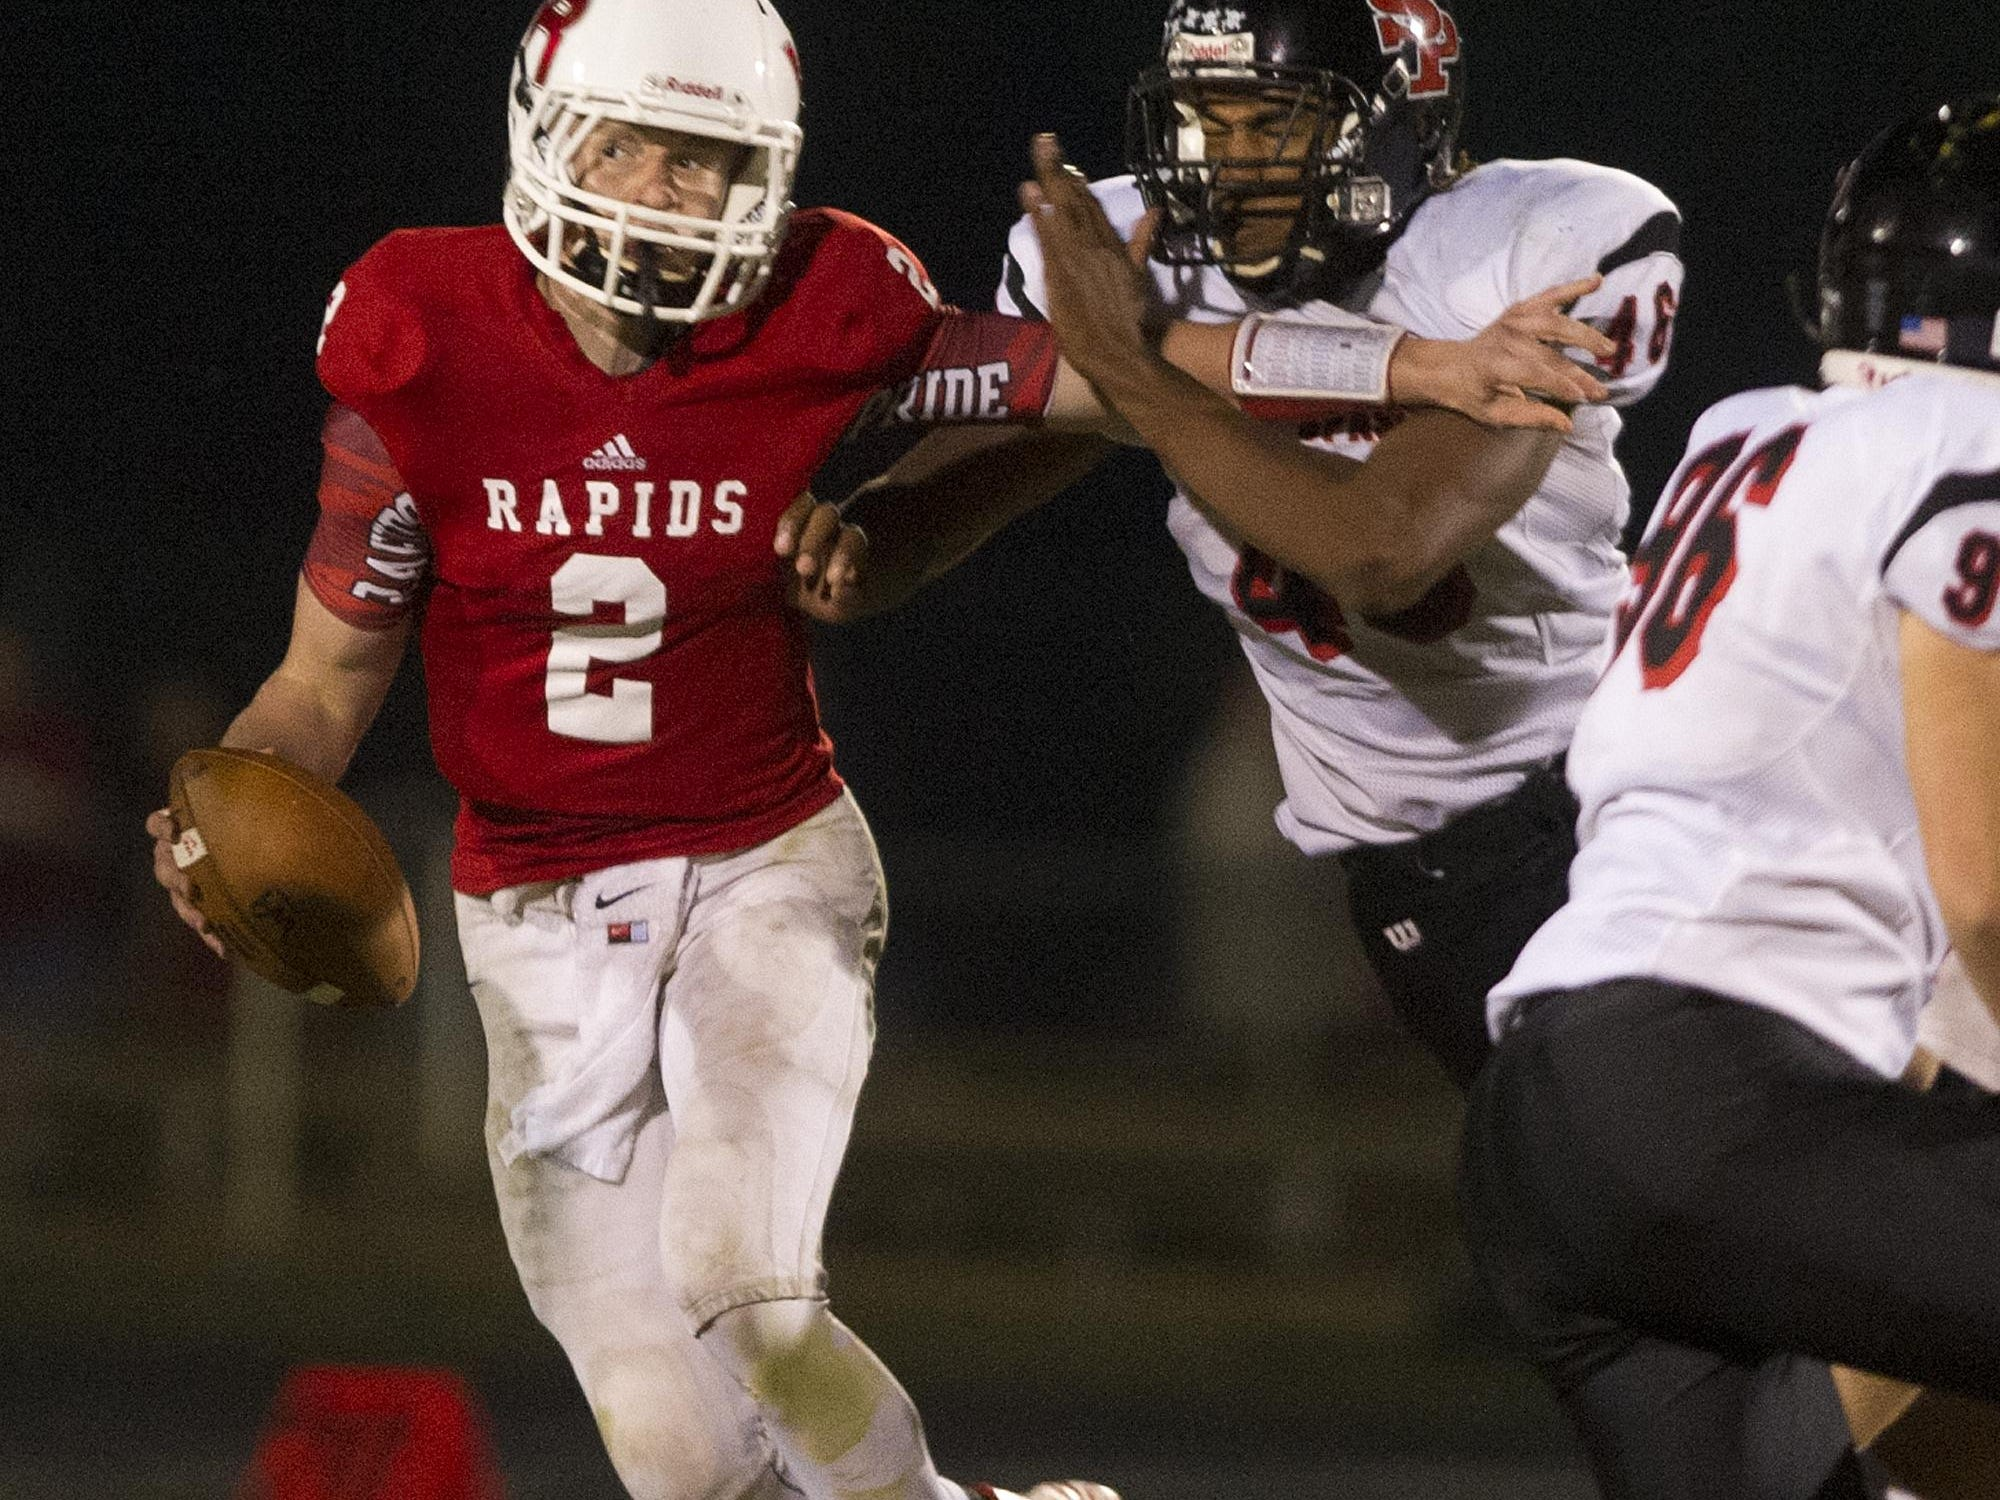 Wisconsin Rapids quarterback Benjamin Olson, left, attempts to fend off SPASH's Patrick Dietzman, right, during the Wisconsin Valley Conference football game against SPASH at South Wood County Recreation Center in Wisconsin Rapids, Friday, Sept. 25, 2015.